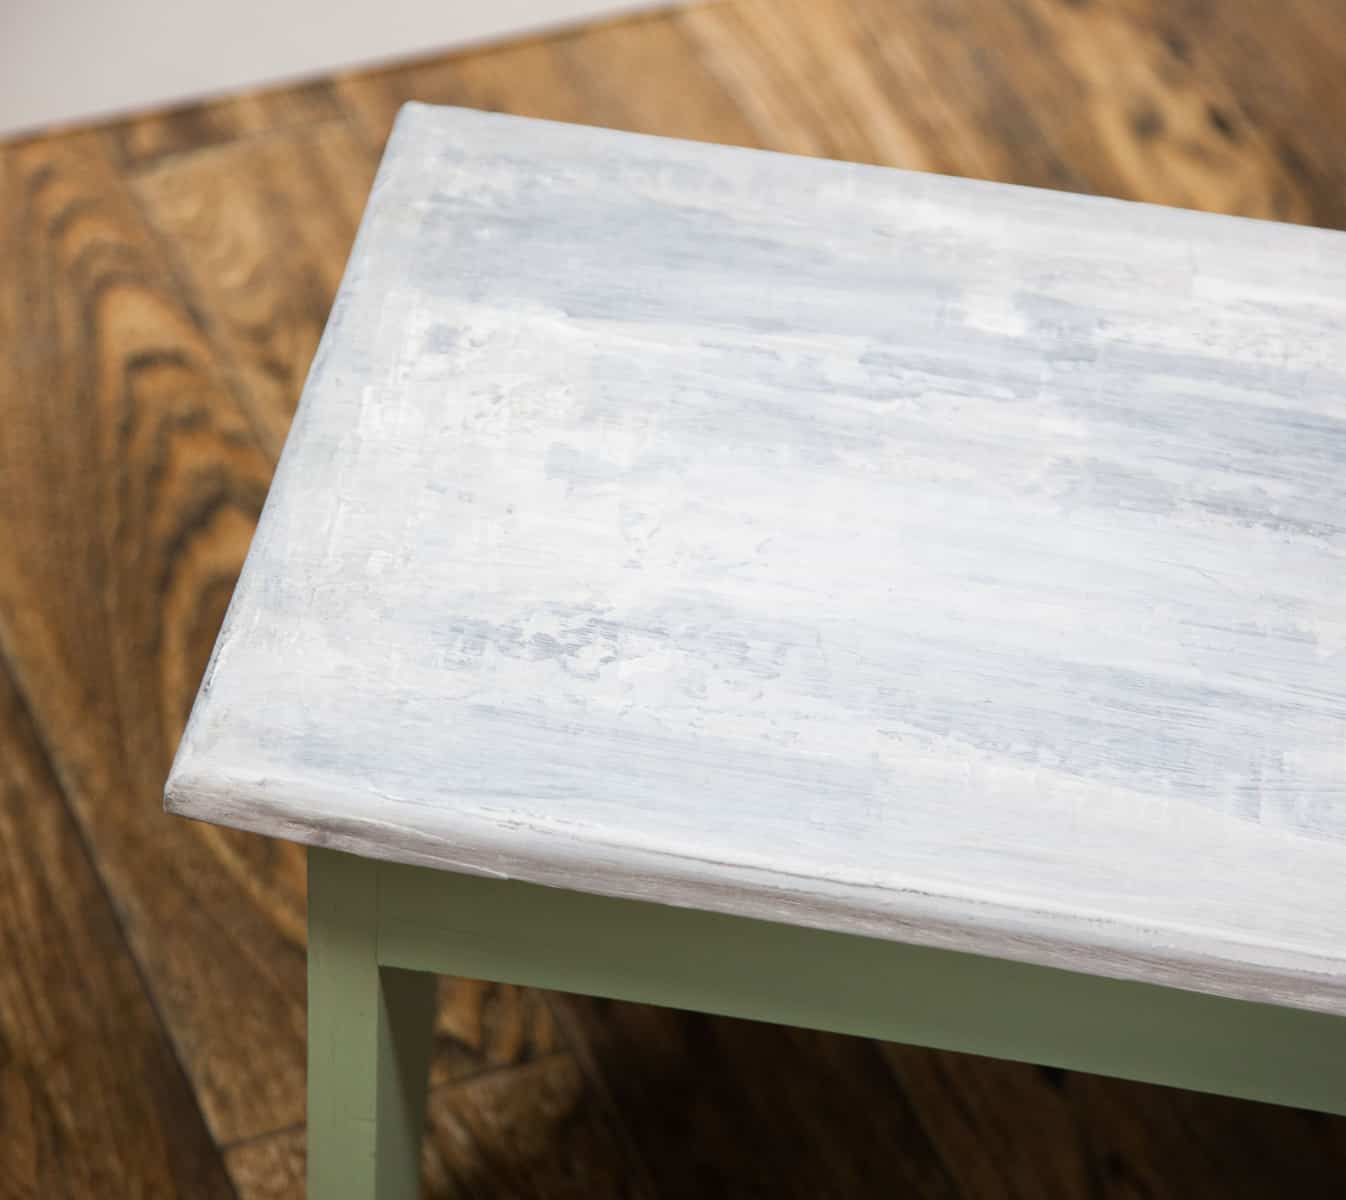 How To Create a Faux Concrete Finish on Furniture with Country Chic Paint #DIY #furniturepaint #paintedfurniture #homedecor #chalkpaint #fauxfinish #concrete #cement #texture #how to #technique #tutorial #video #countrychicpaint - www.countrychicpaint.com/tutorials